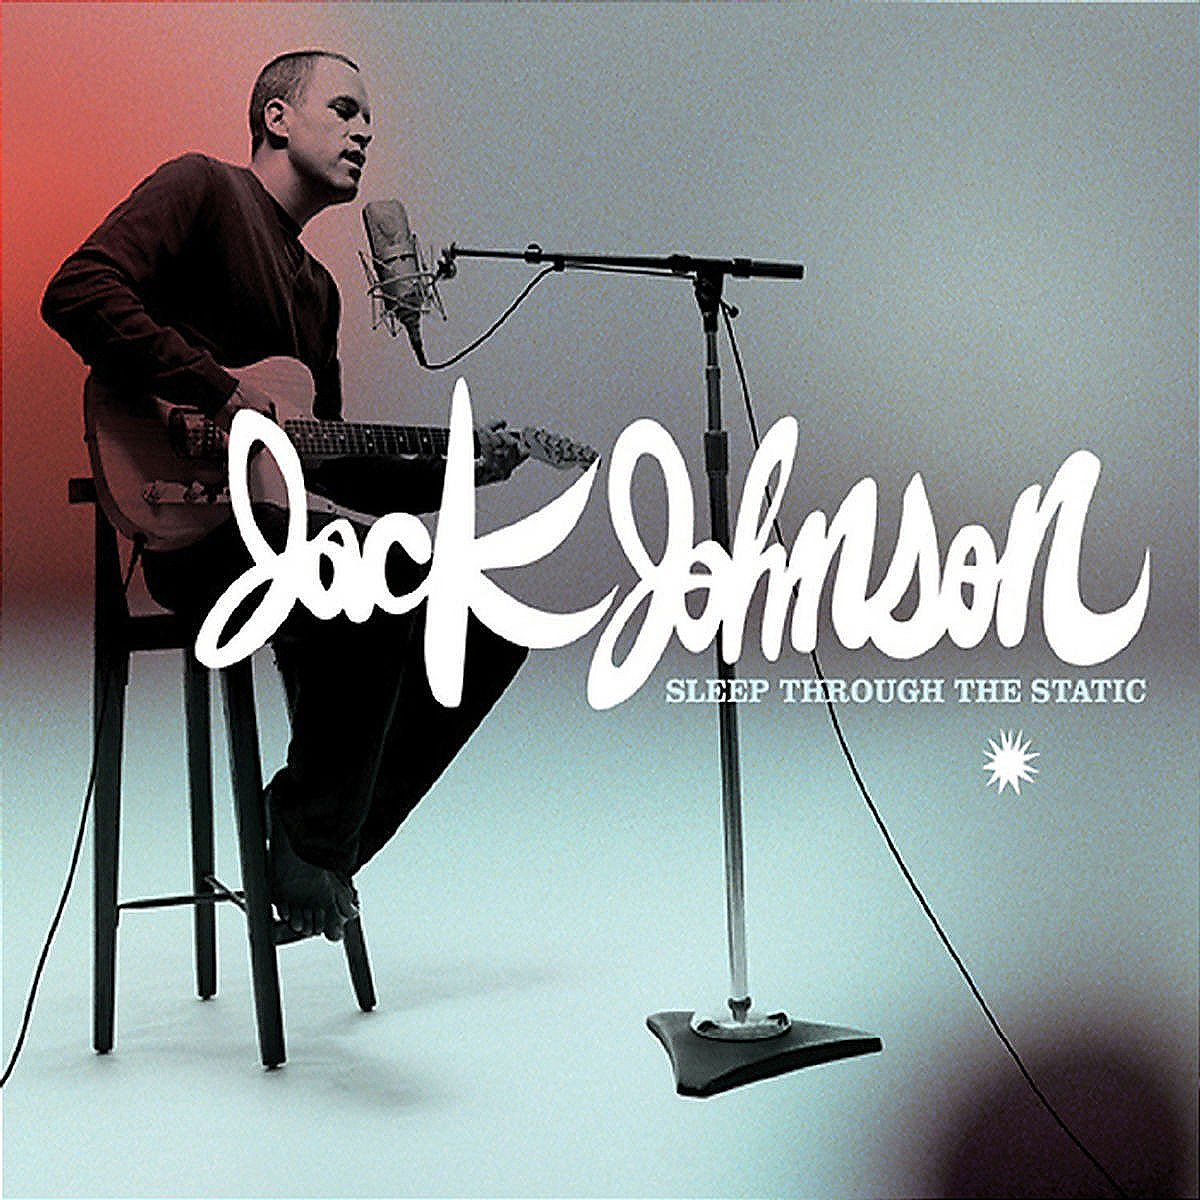 Jack Johnson - Sleep Through The Static album cover